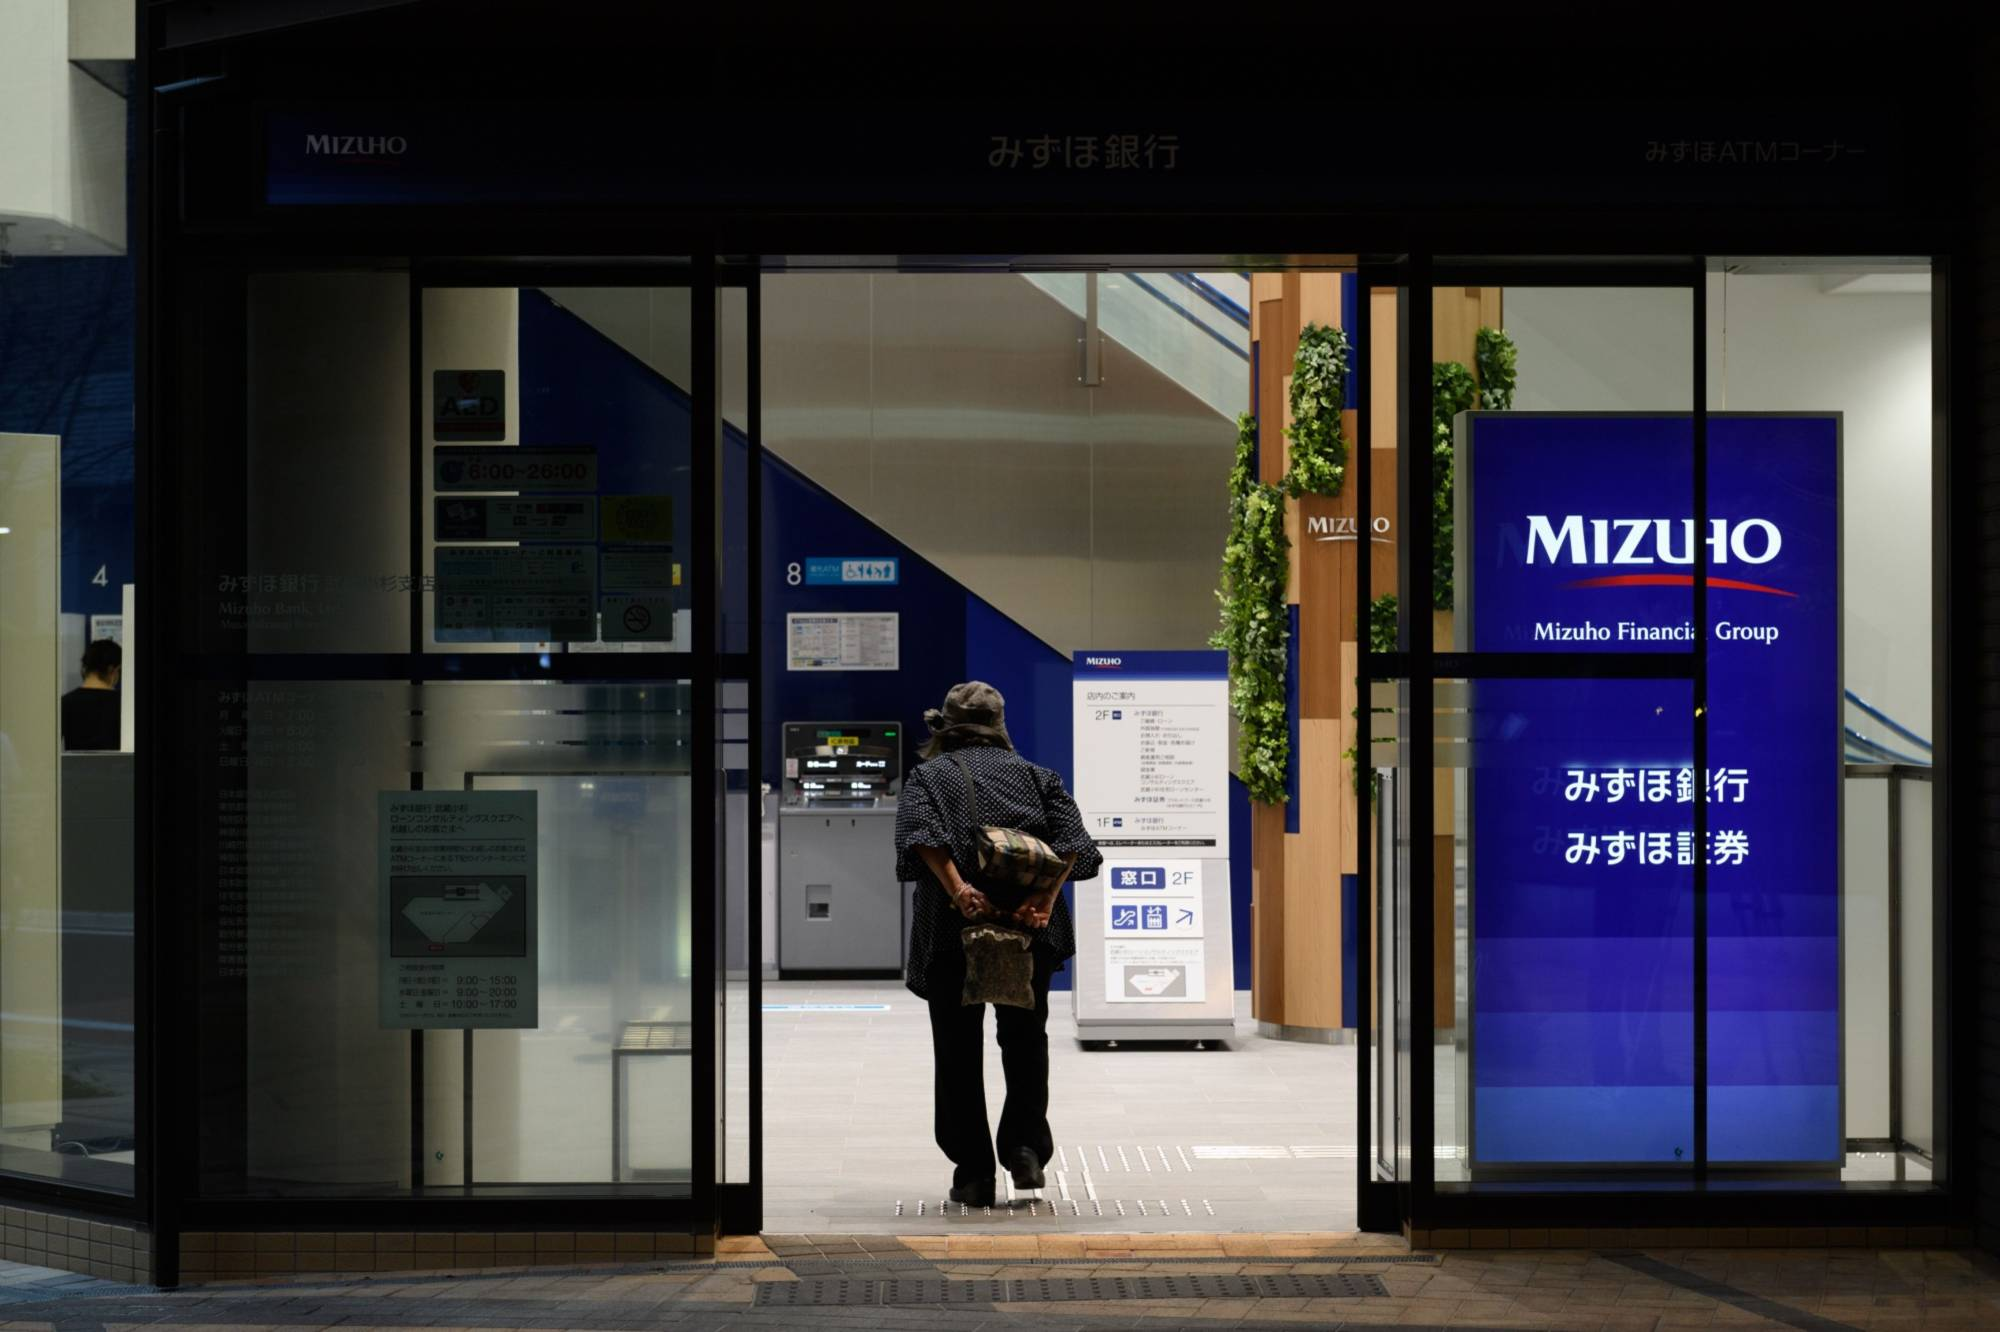 A series of system failures at Mizuho Bank were due to poor operation and management, a third-party probe has concluded. | BLOOMBERG